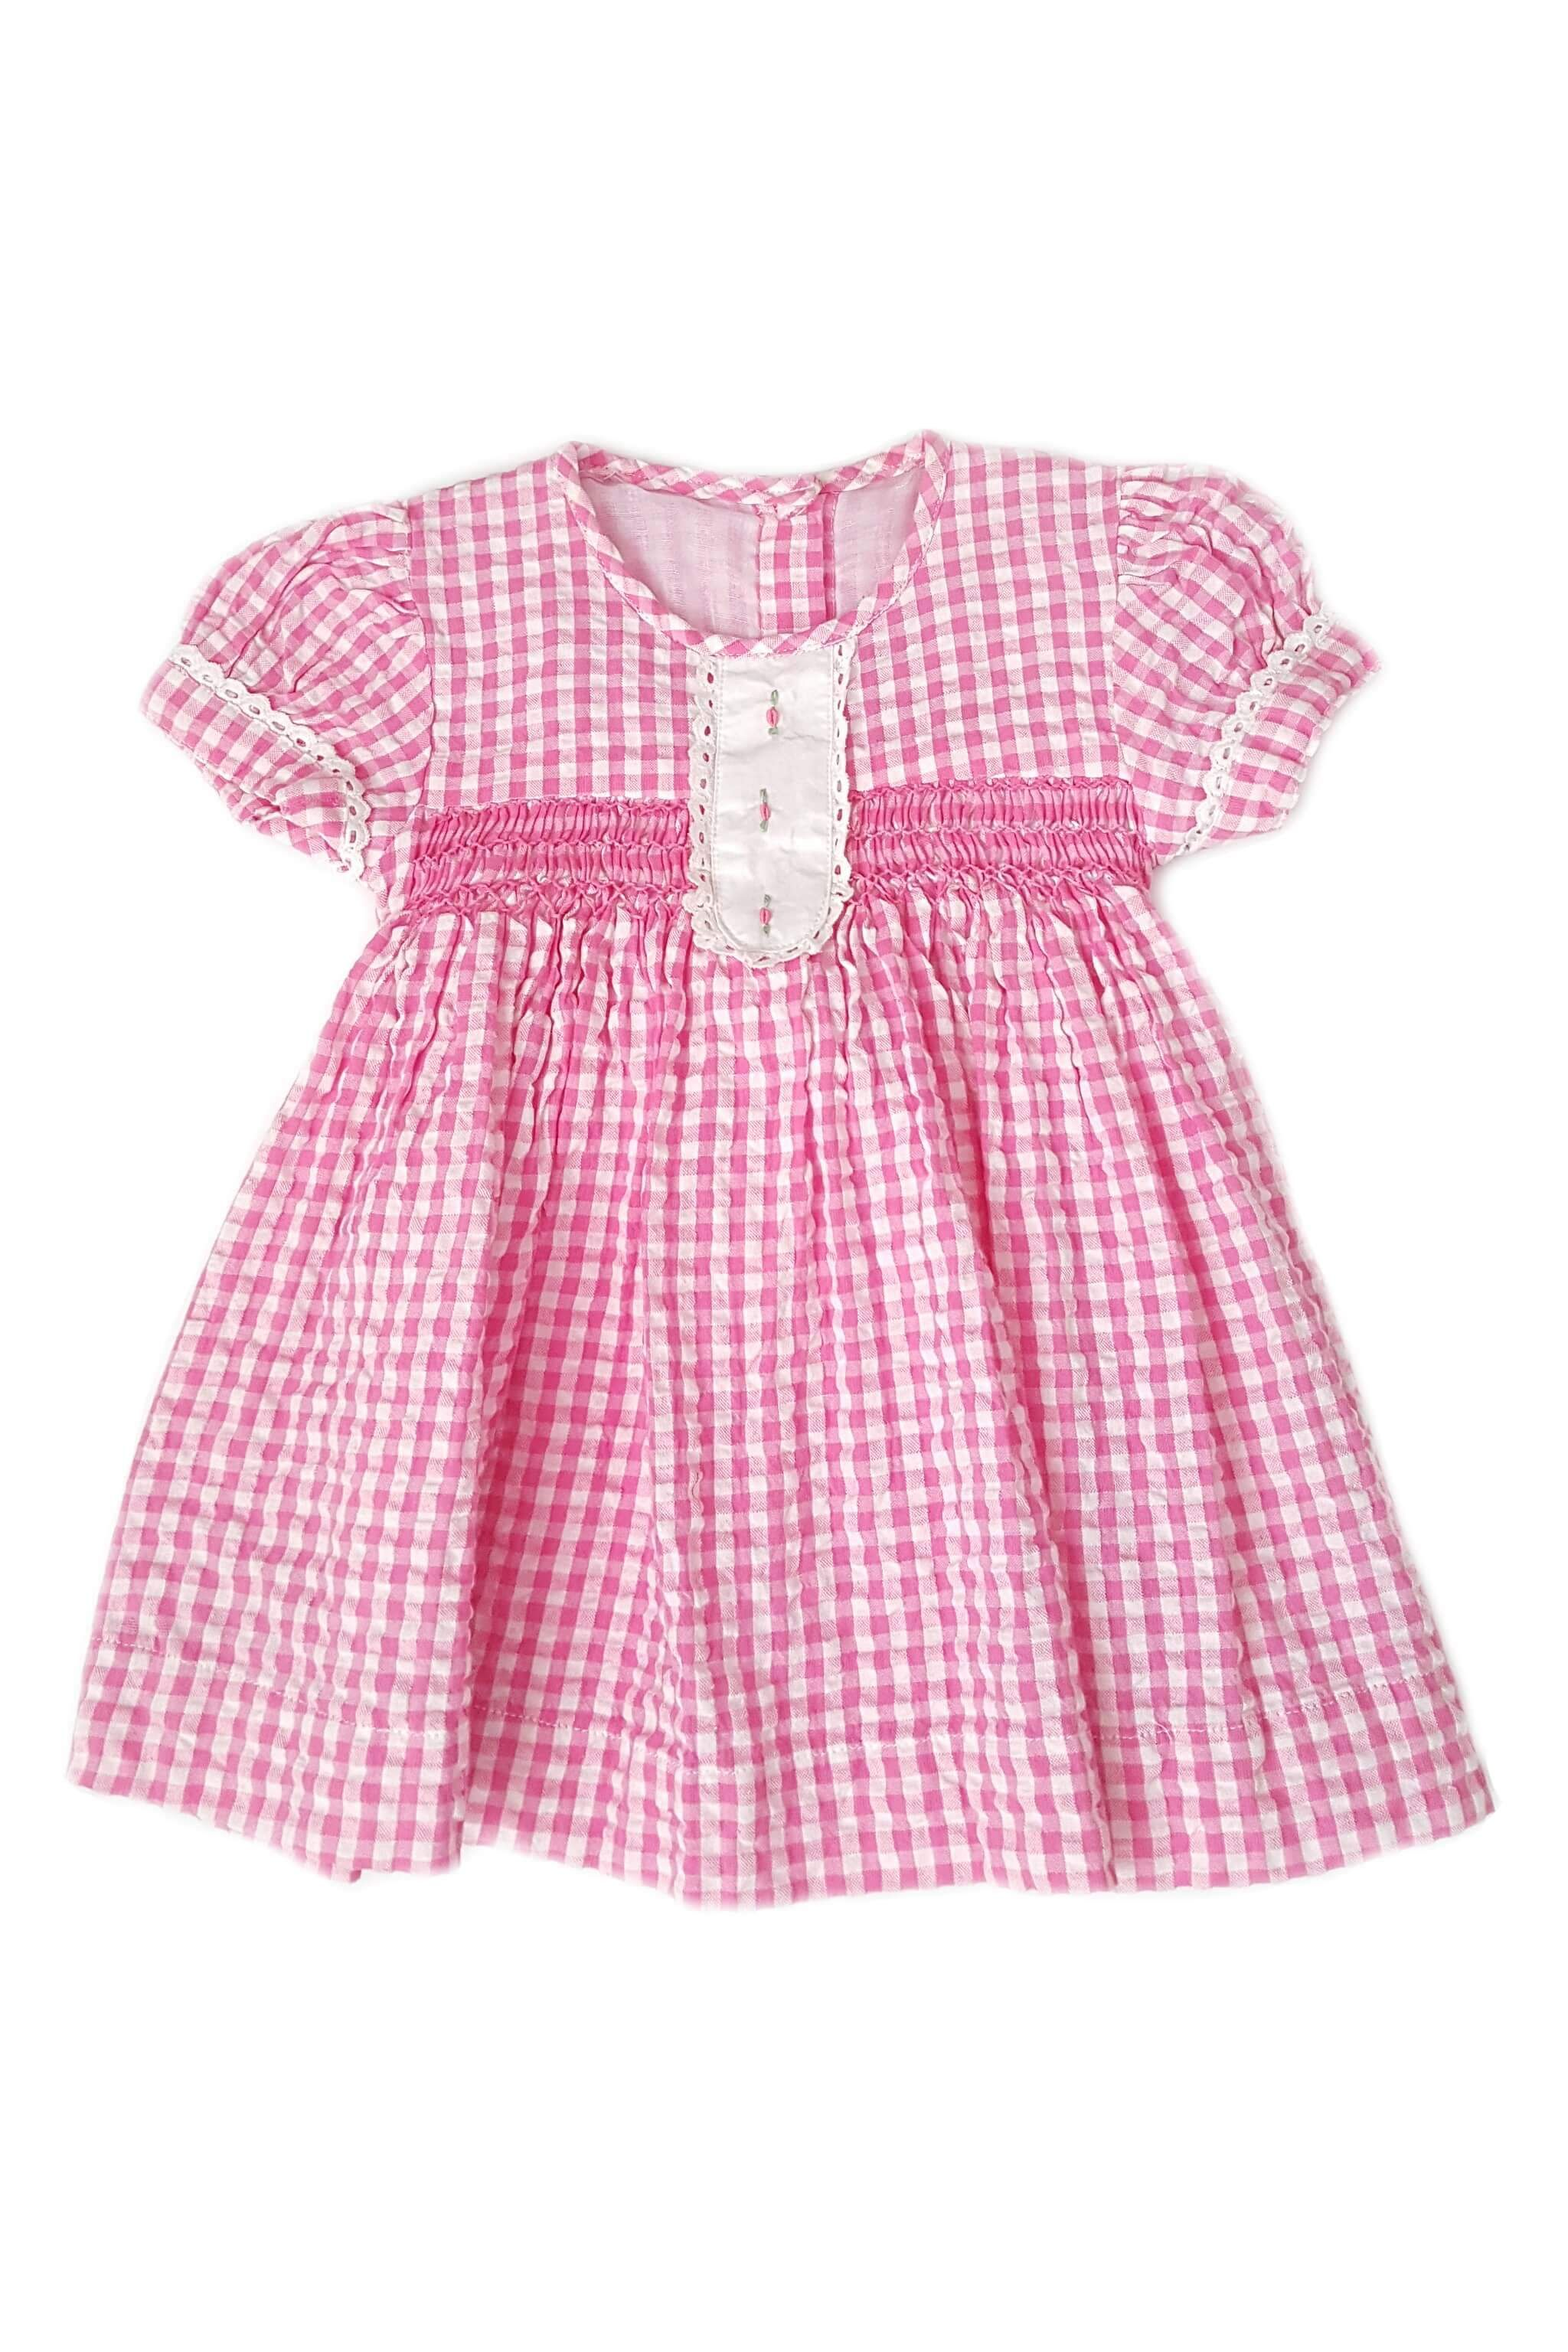 340527ad9 Pink Bunny Stripes and Dots Girls  Easter Dresses